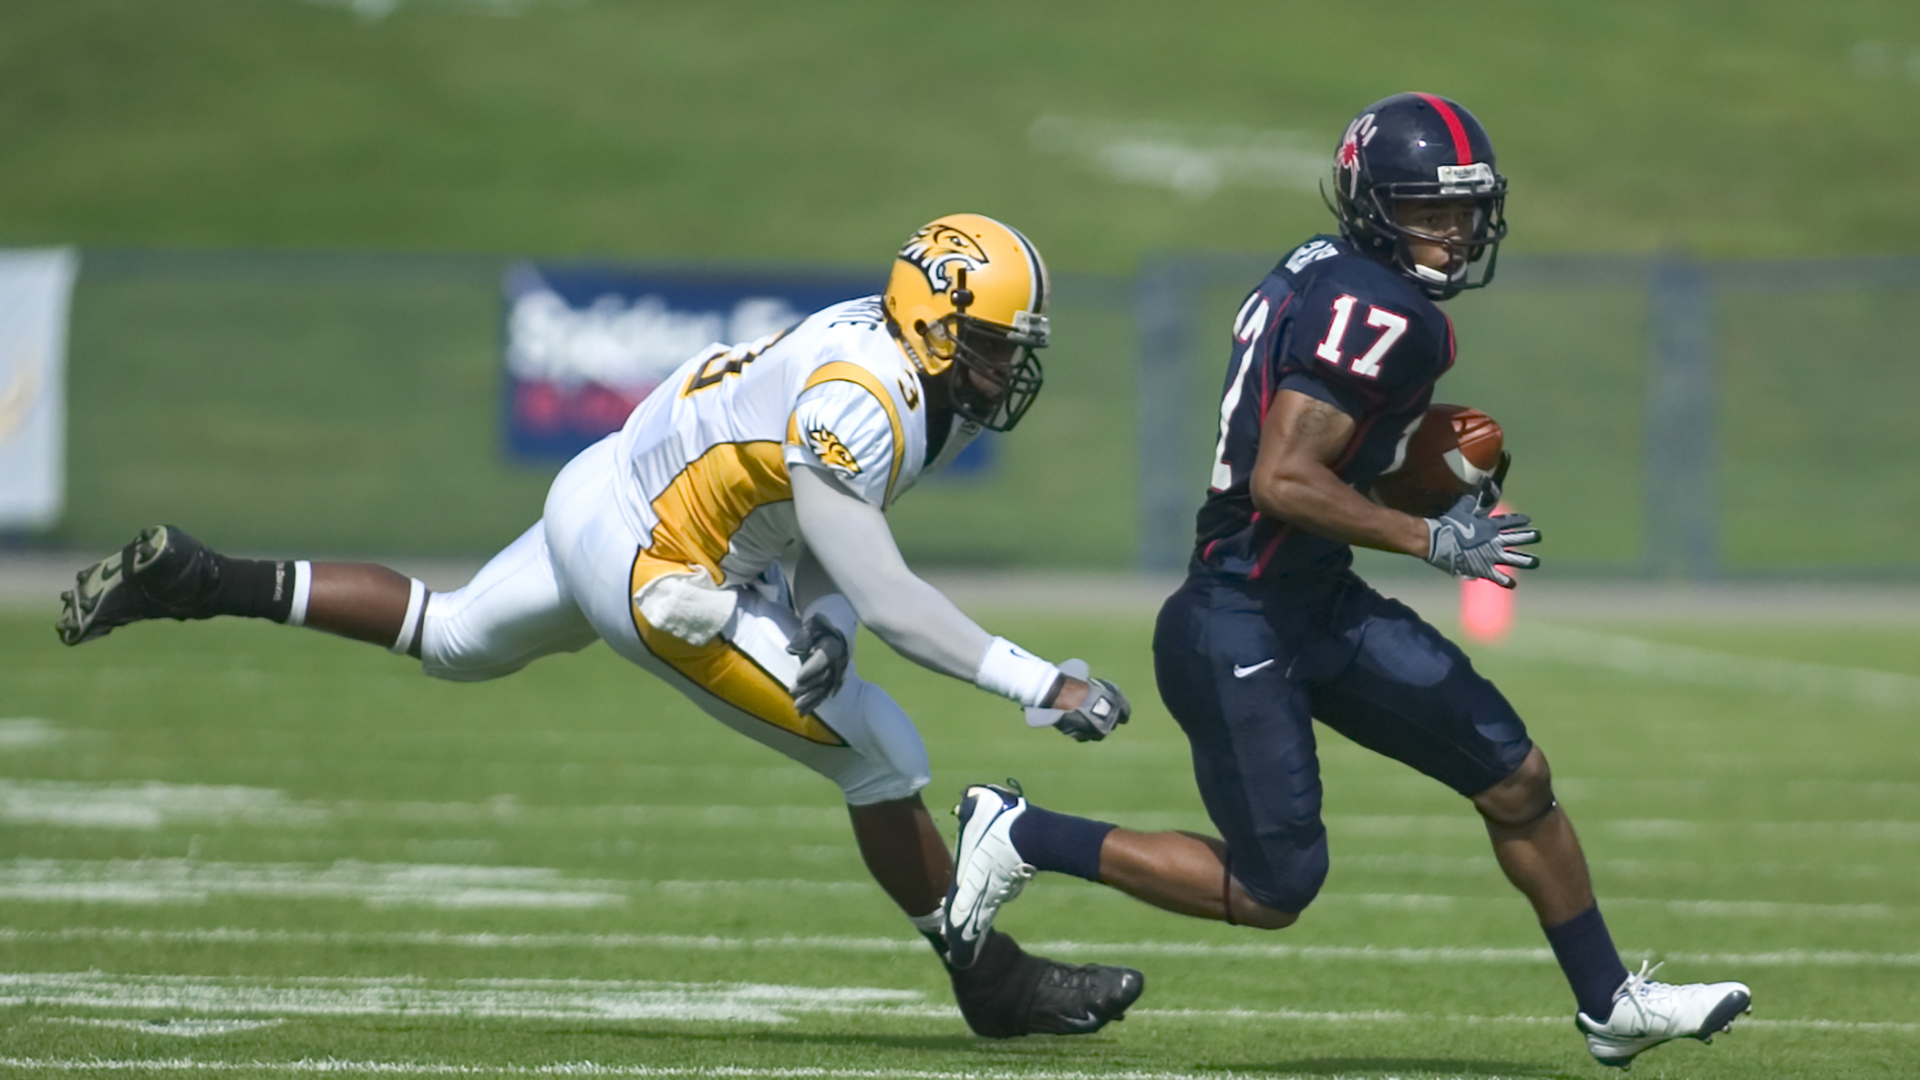 10 Year Anniversary Look Back Spiders Topple Towson This Week In 2008 University Of Richmond Athletics